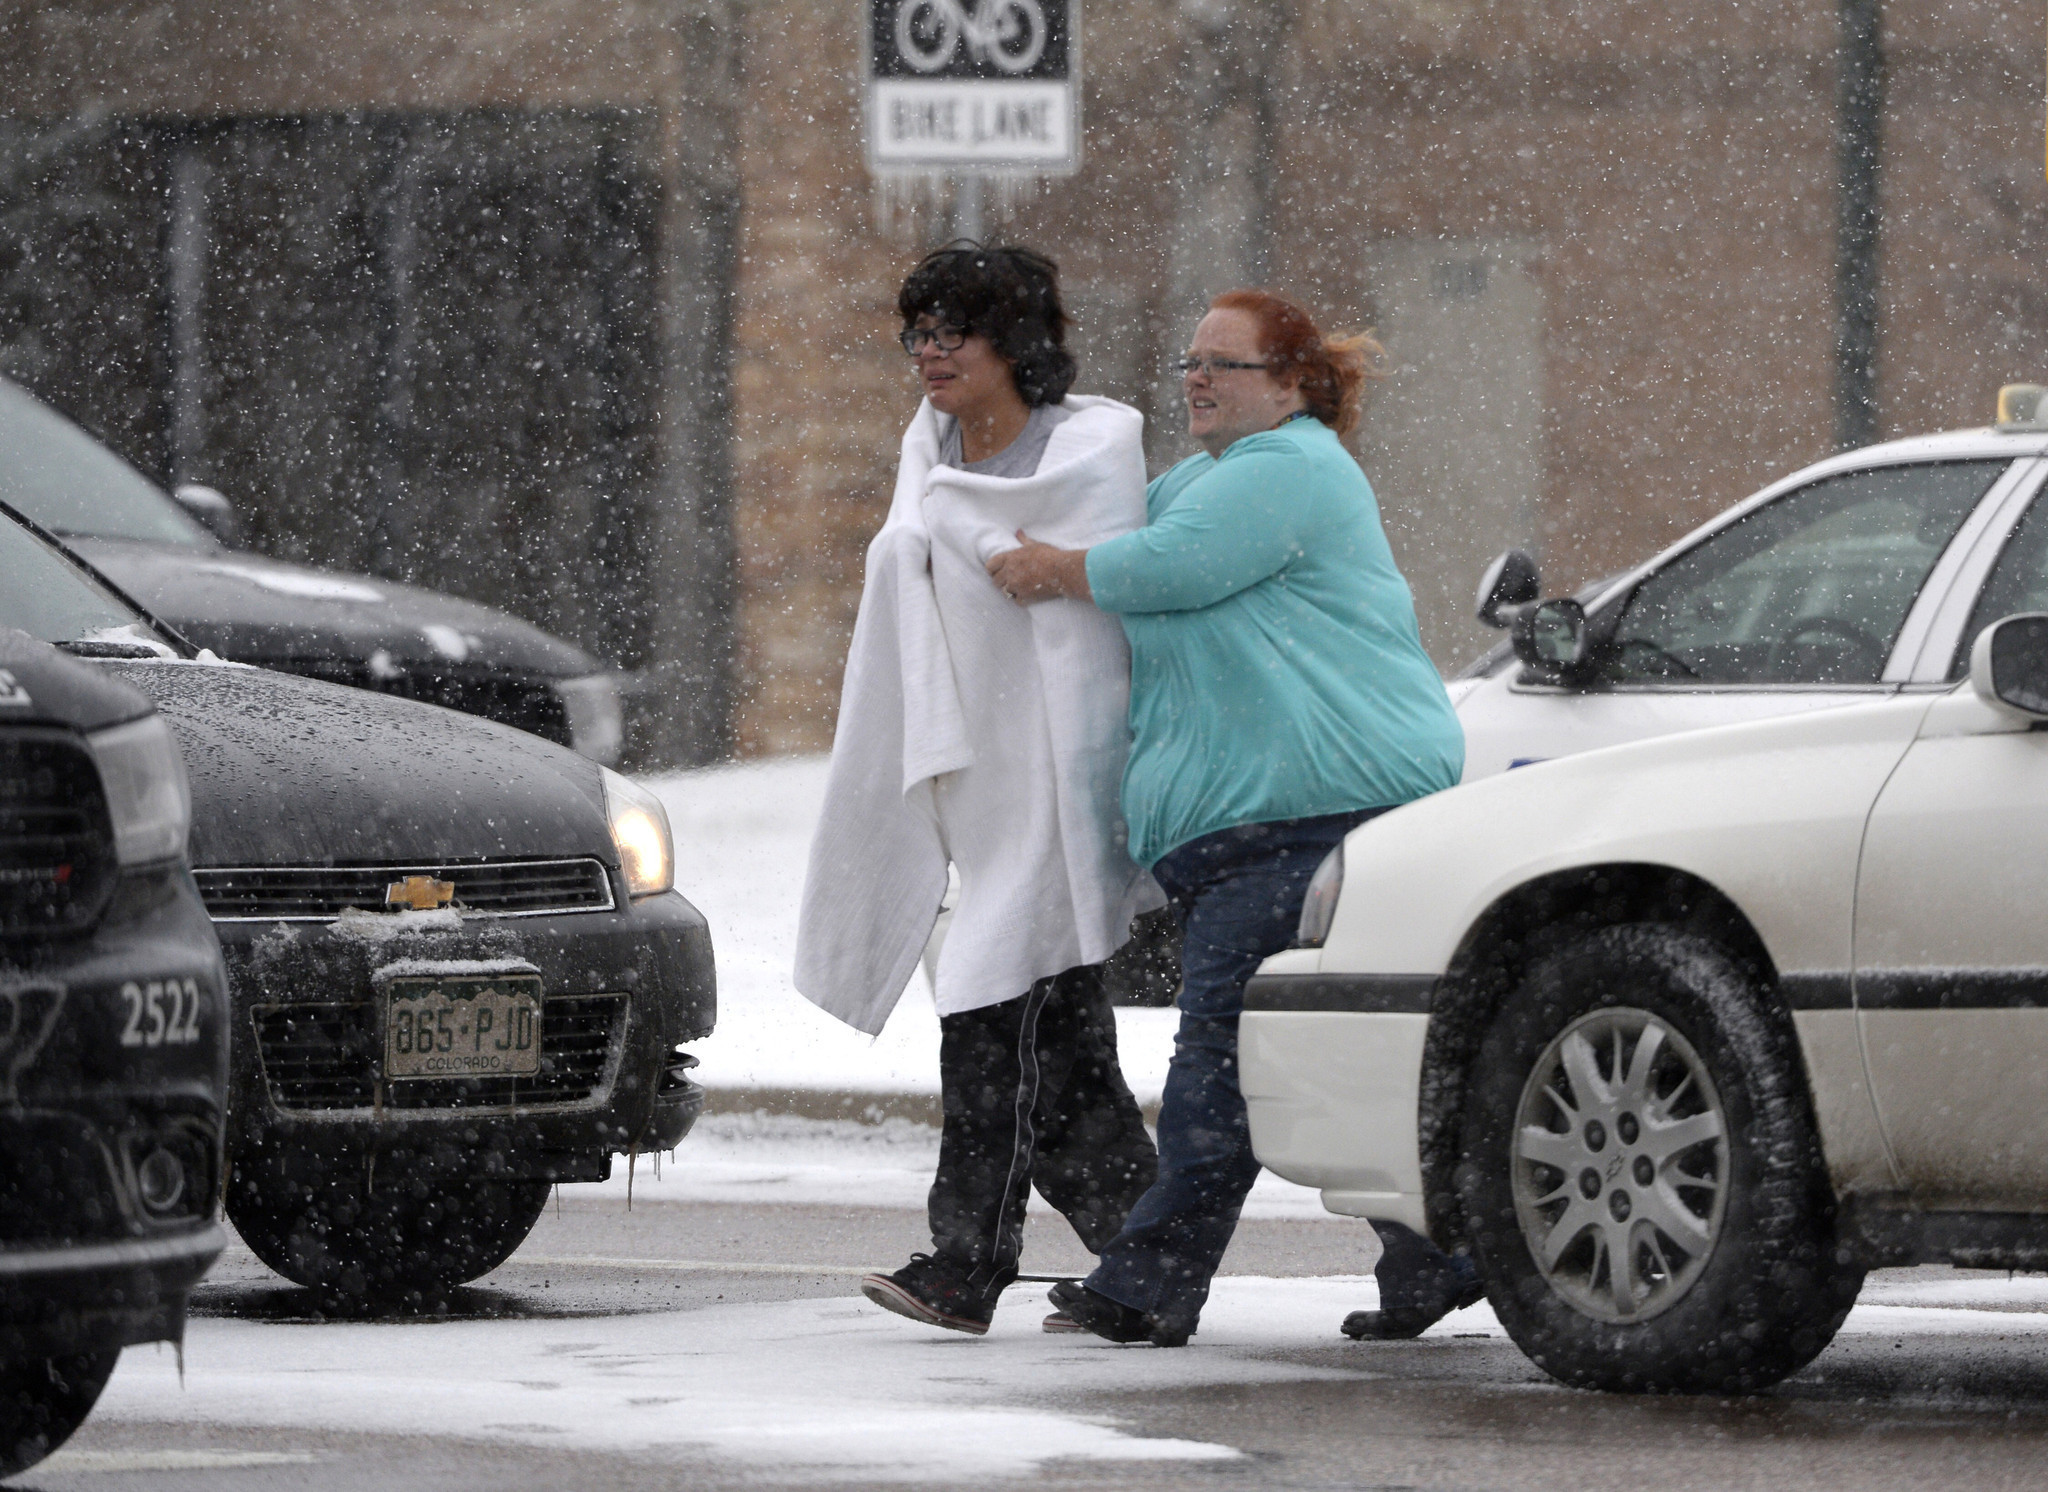 Florida Planned Parenthood Offers Condolences, Reassurance in Wake of Colorado